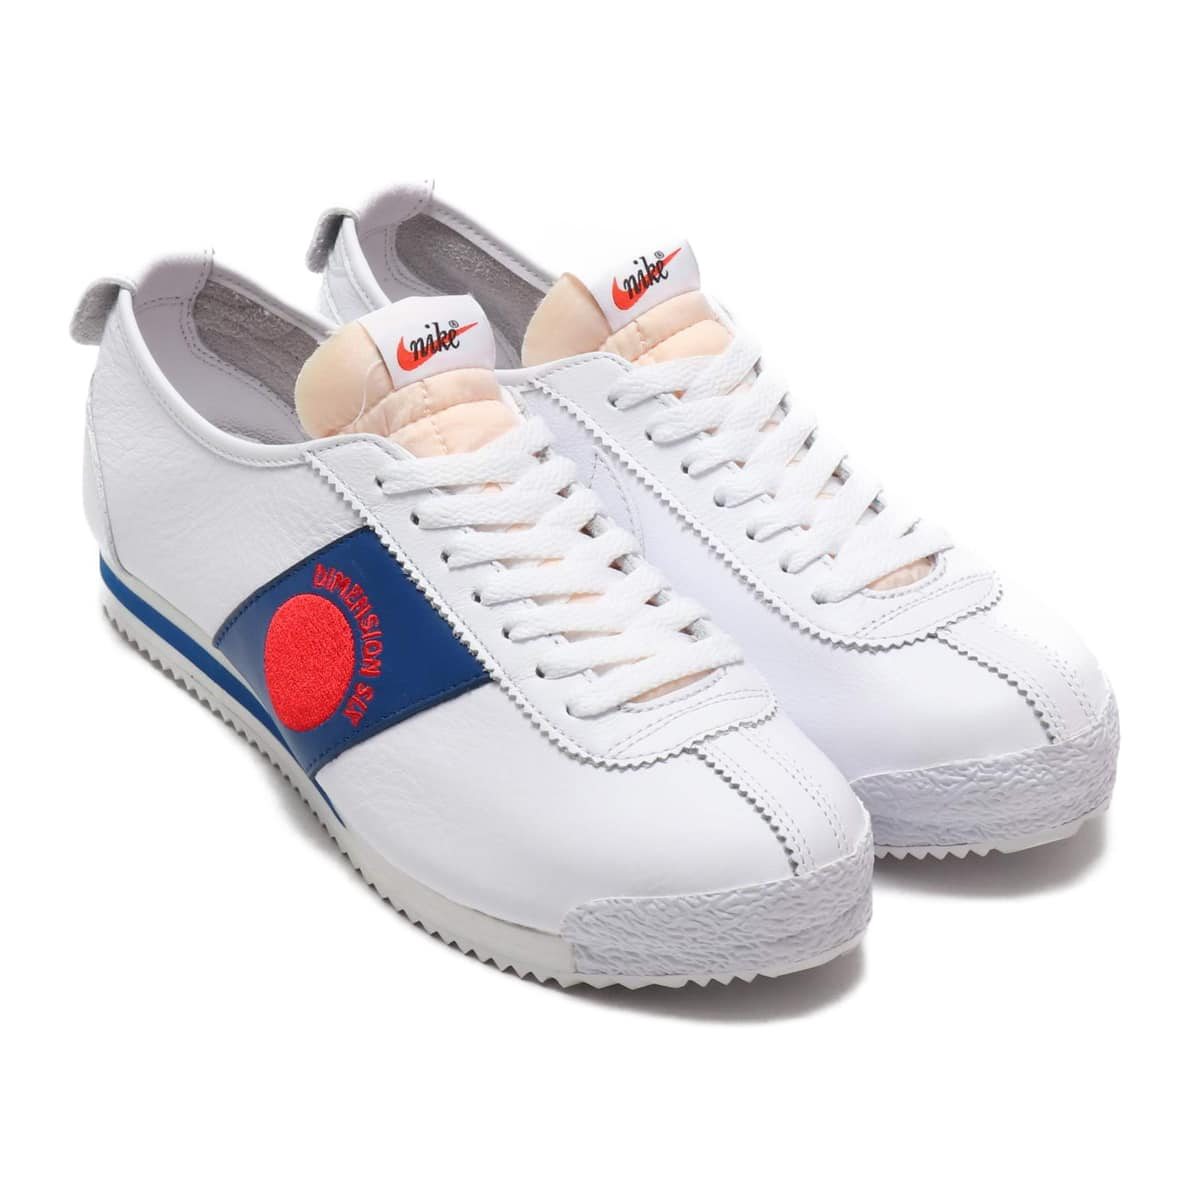 NIKE CORTEZ 72 S.D. WHITE/VARSITY RED-GAME ROYAL 19FA-S_photo_large